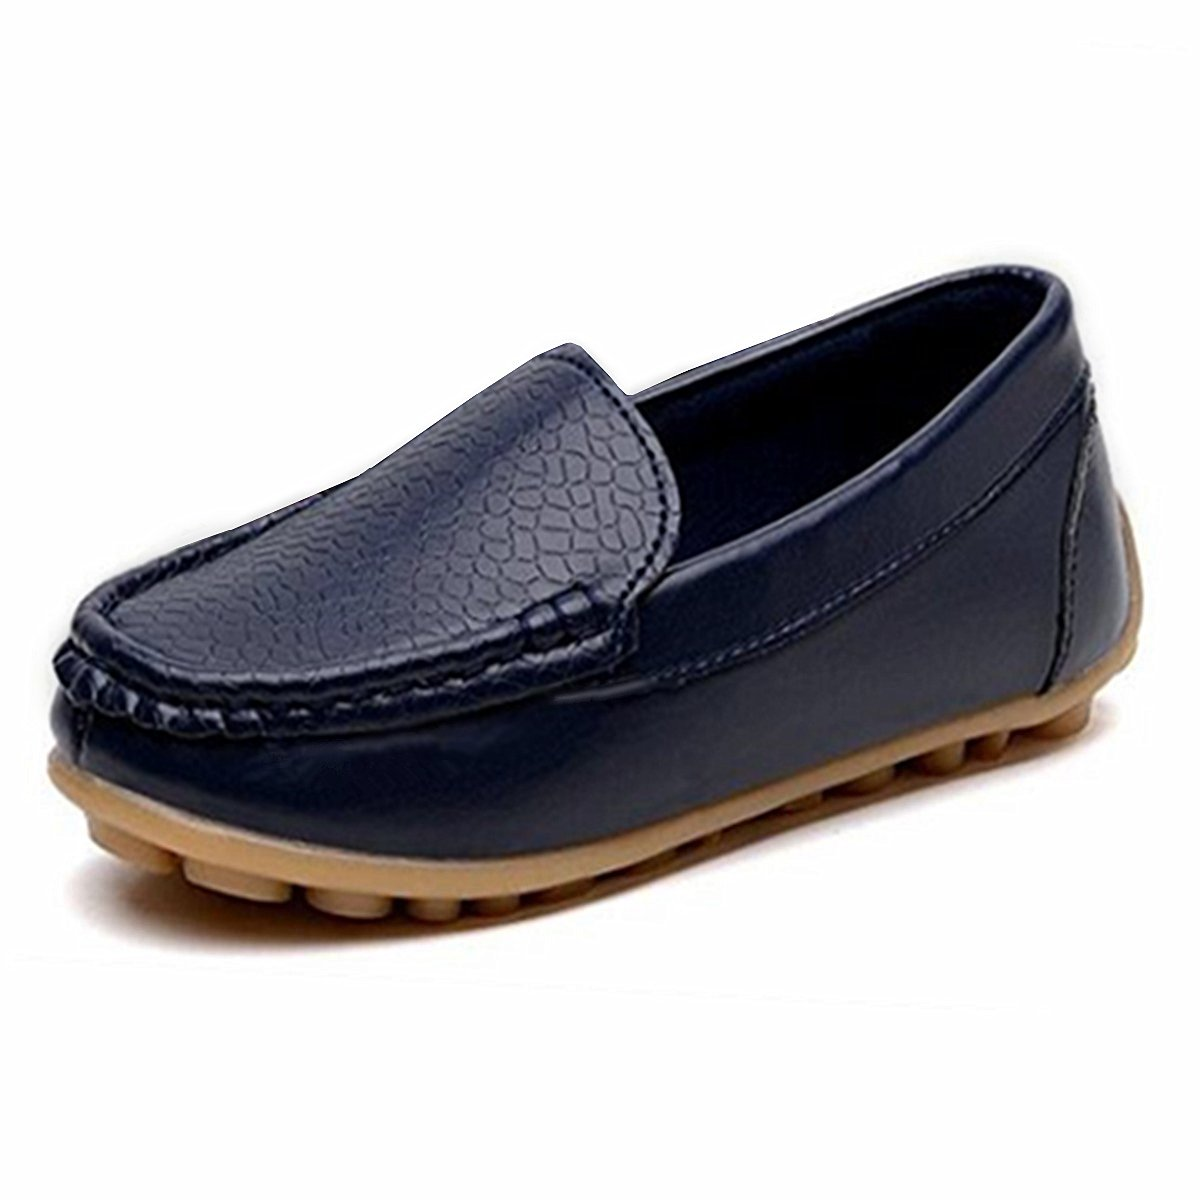 RVROVIC Kids Girls Boys Slip-on Loafers Oxford PU Leather Flats Shoes(Toddler/Little Kid) (10 M Toddler/CN Size 28/17.3cm, Dark Blue)